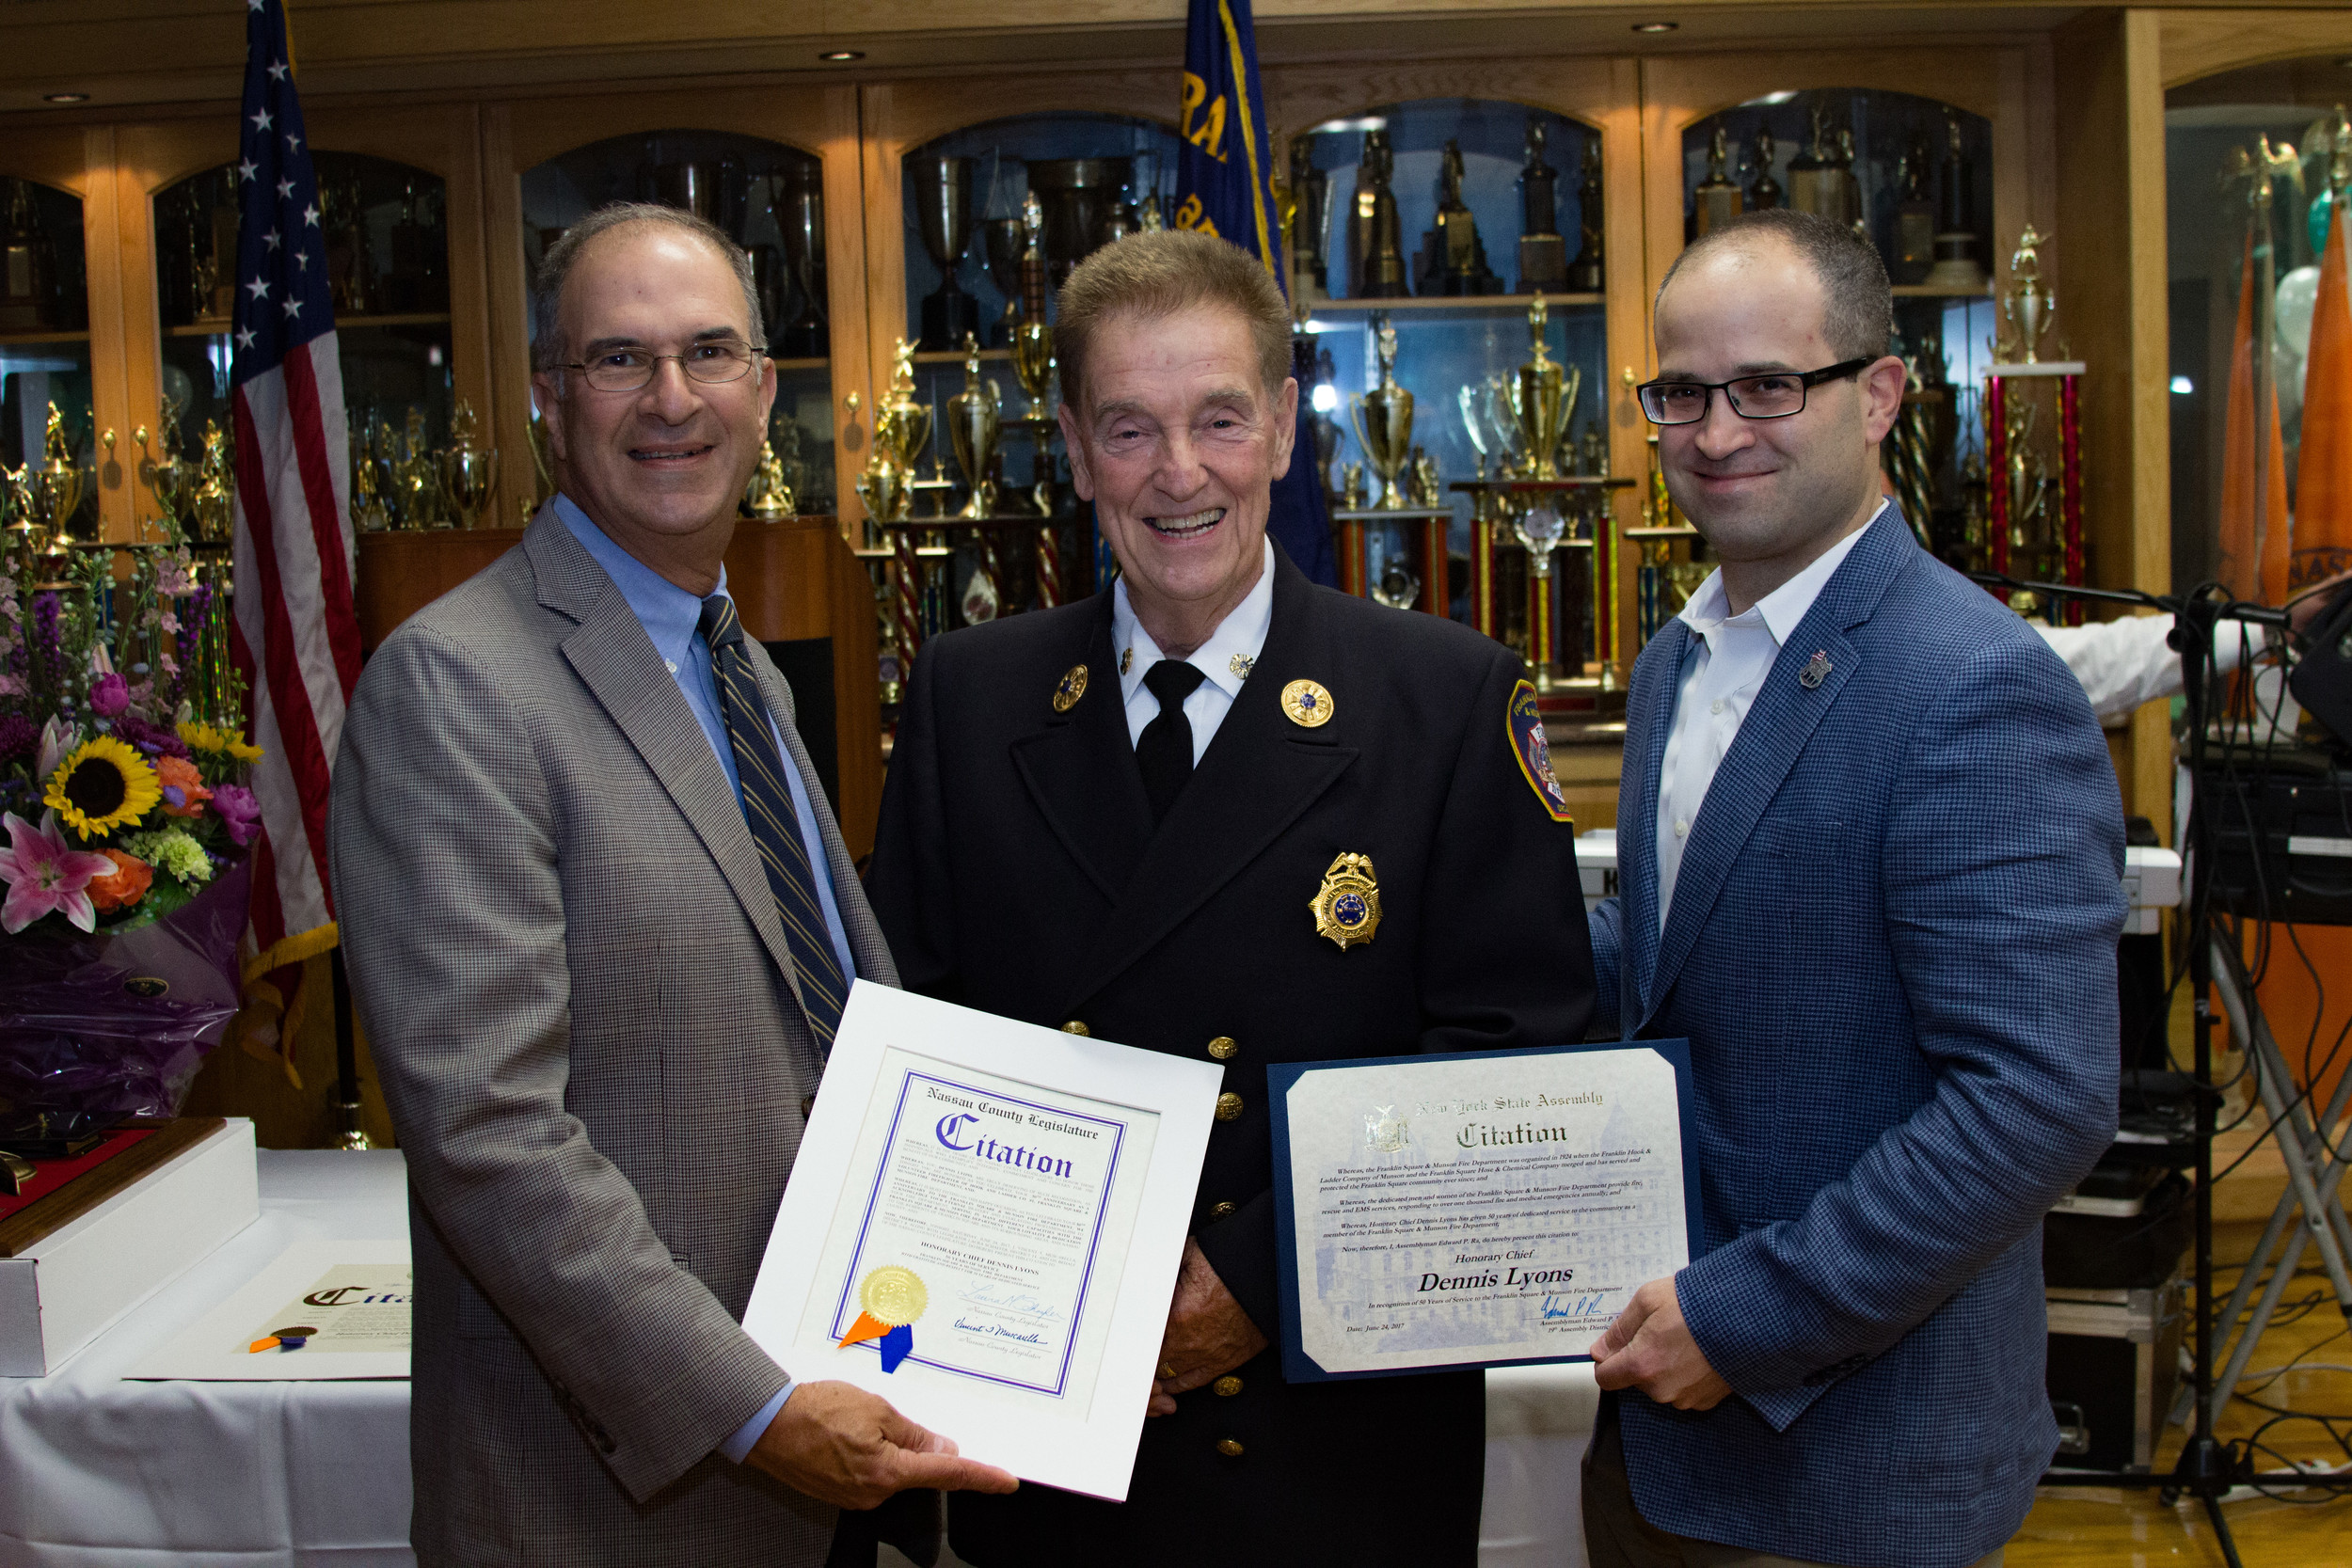 Franklin Square and Munson Fire Department Commissioner Dennis Lyons was honored for 50 years of service on June 24. From left are Nassau County Legislator Vincent Muscarella, Lyons, and Assemblyman Edward Ra, who represents Franklin Square.